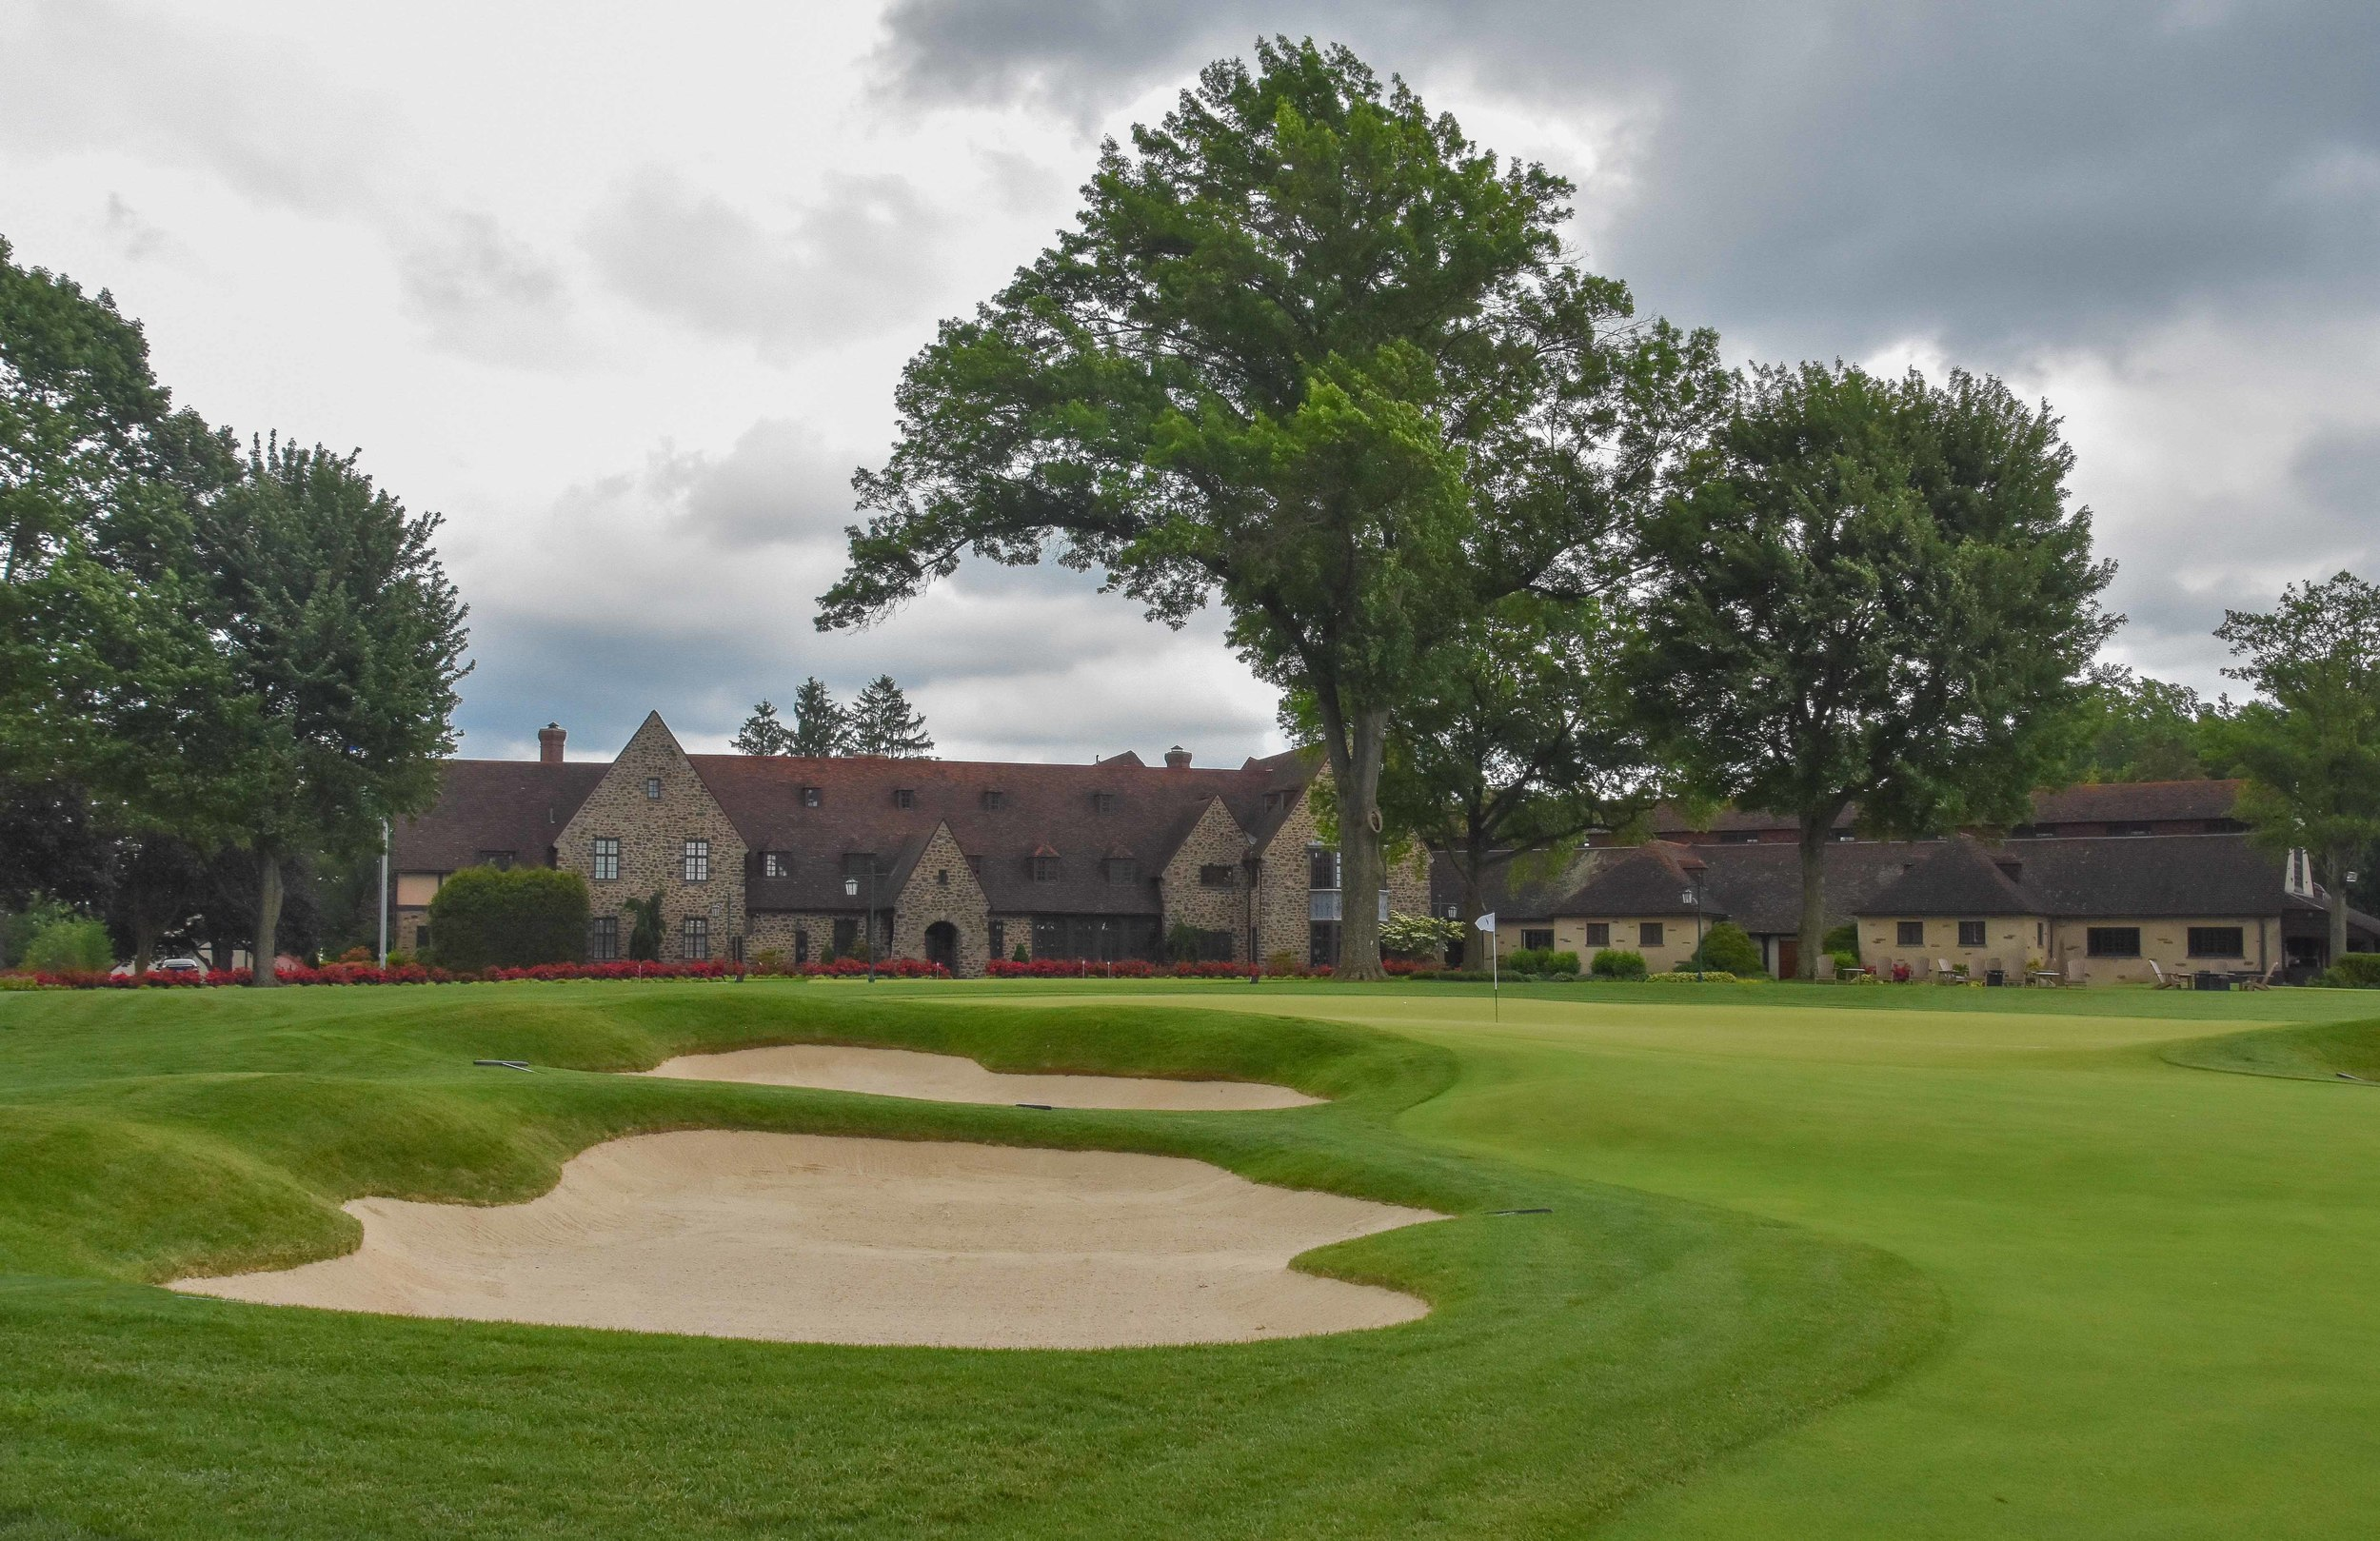 The 18th hole at  Aronimink  was the 99th hole of the trip. Looks like we will have to come back to make it an even 100.